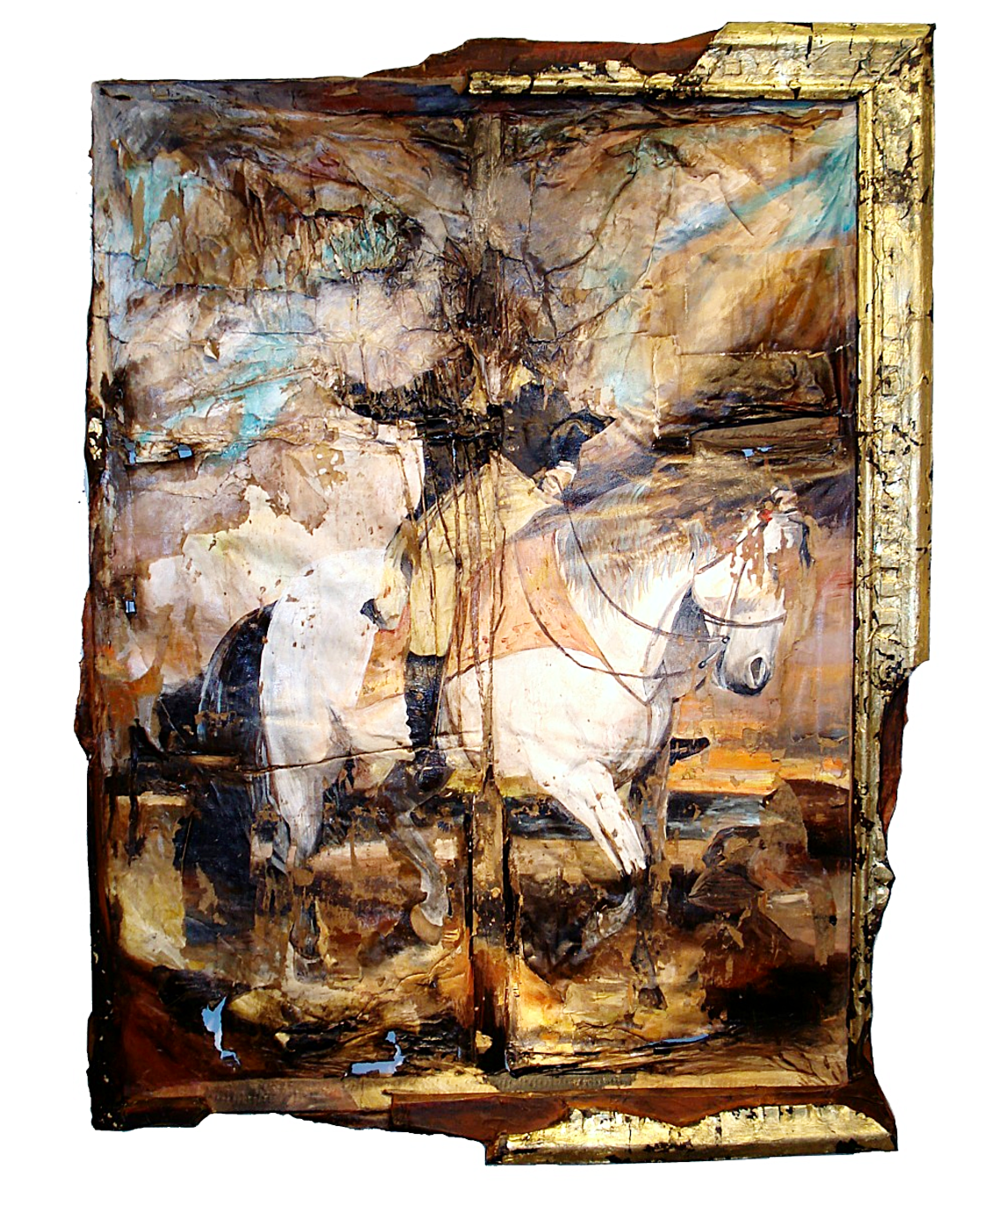 Valerie Hegarty, Ghost of History, 2016, stretcher, canvas, paper-mache, acrylic paint, foamcore and molding.